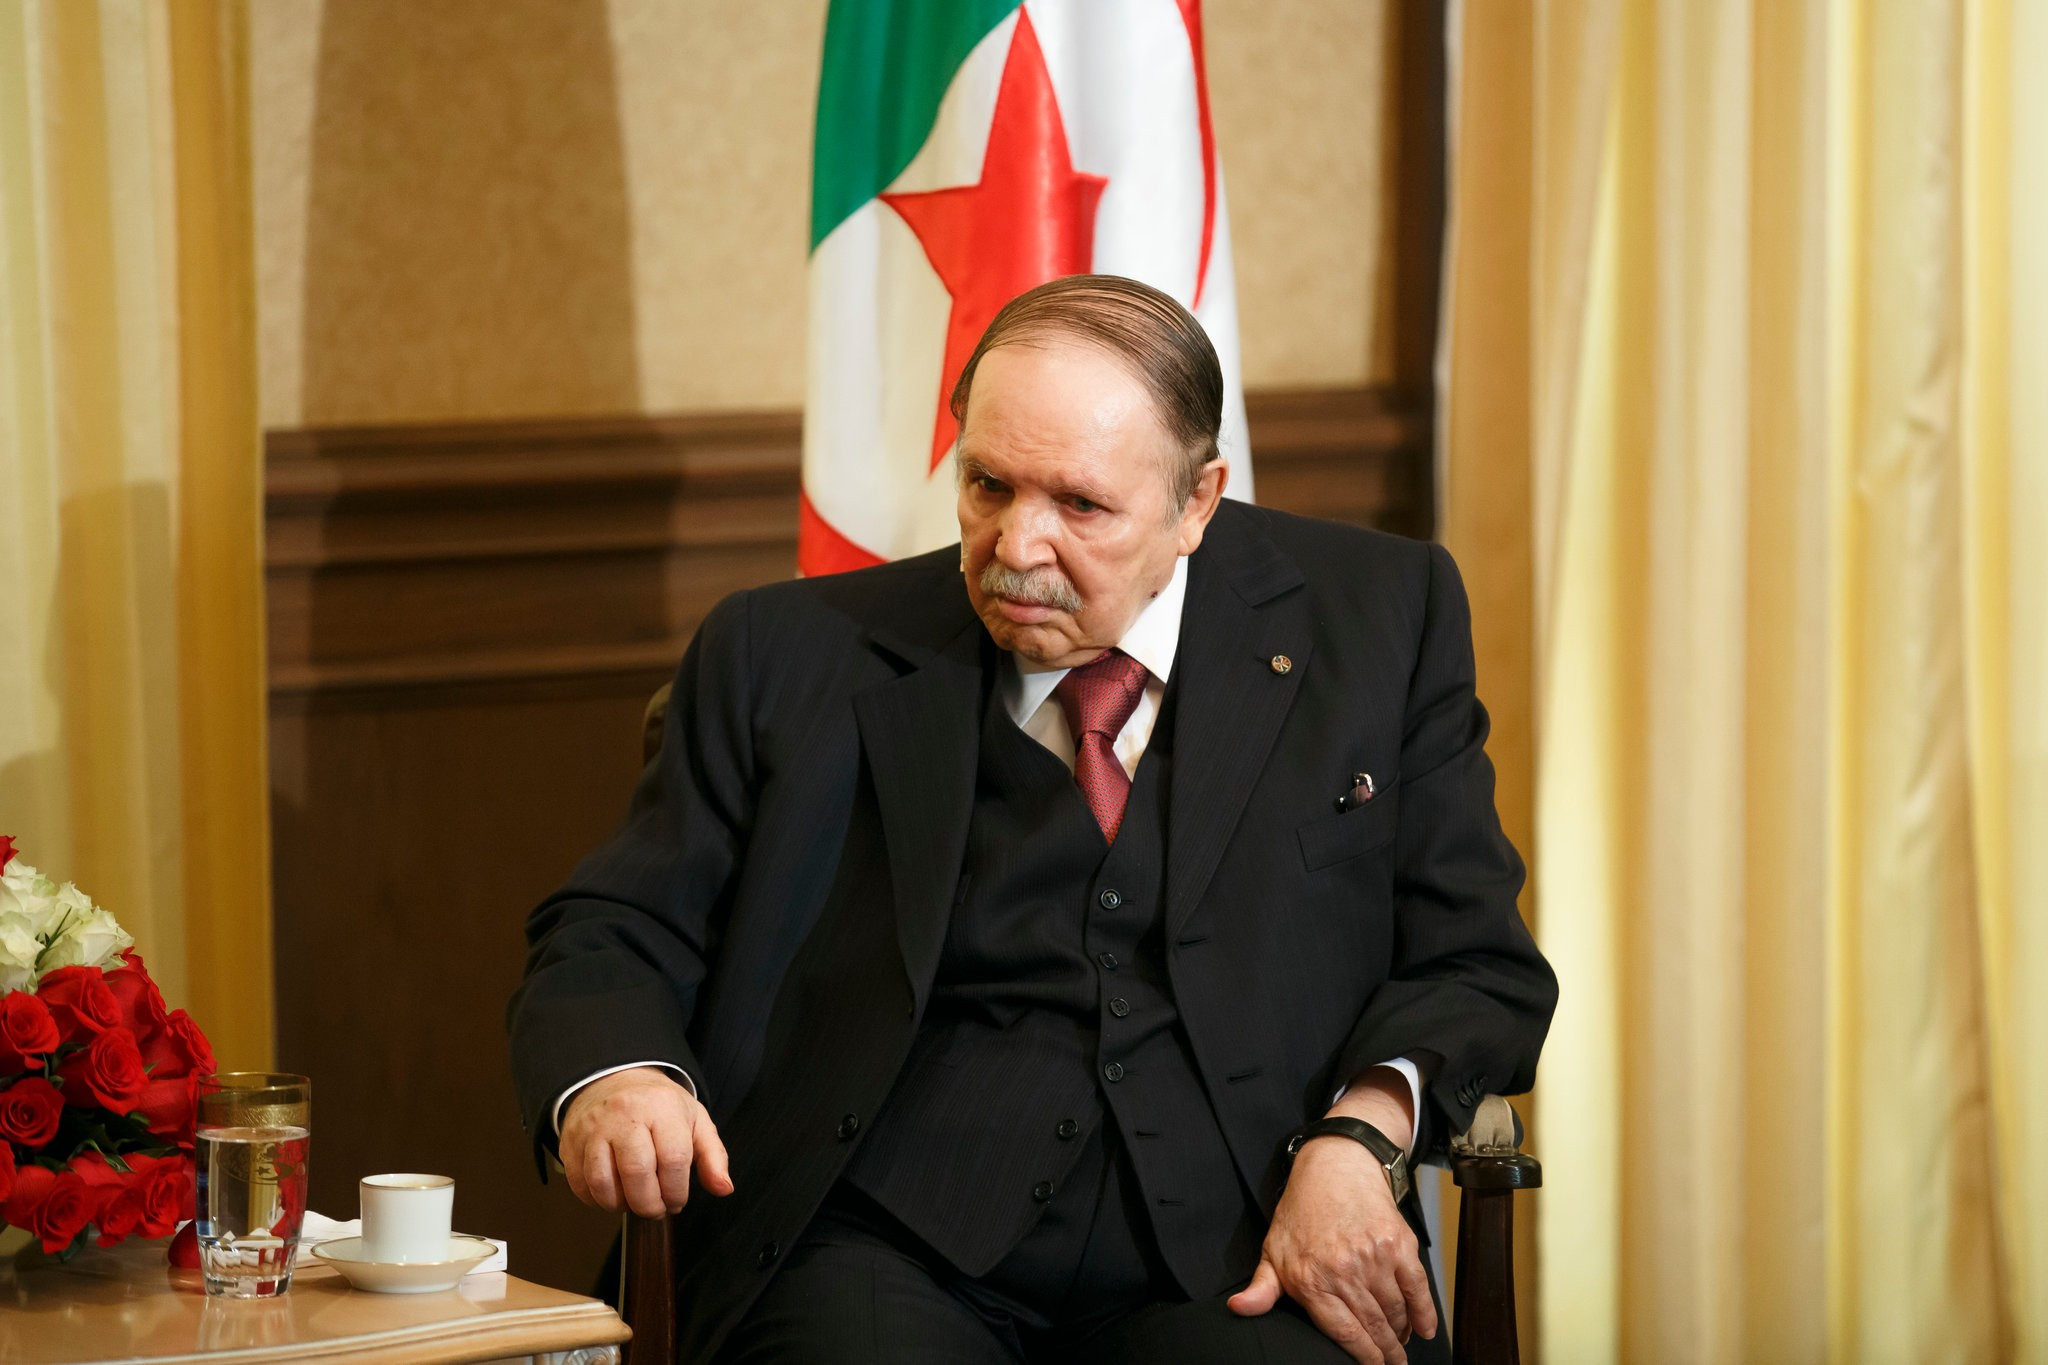 Algeria's president, Abdelaziz Bouteflika, in 2015. Long ill, Mr. Bouteflika announced on Tuesday that he had resigned. Credit Thomas Trutschel/Photothek, via Getty Images